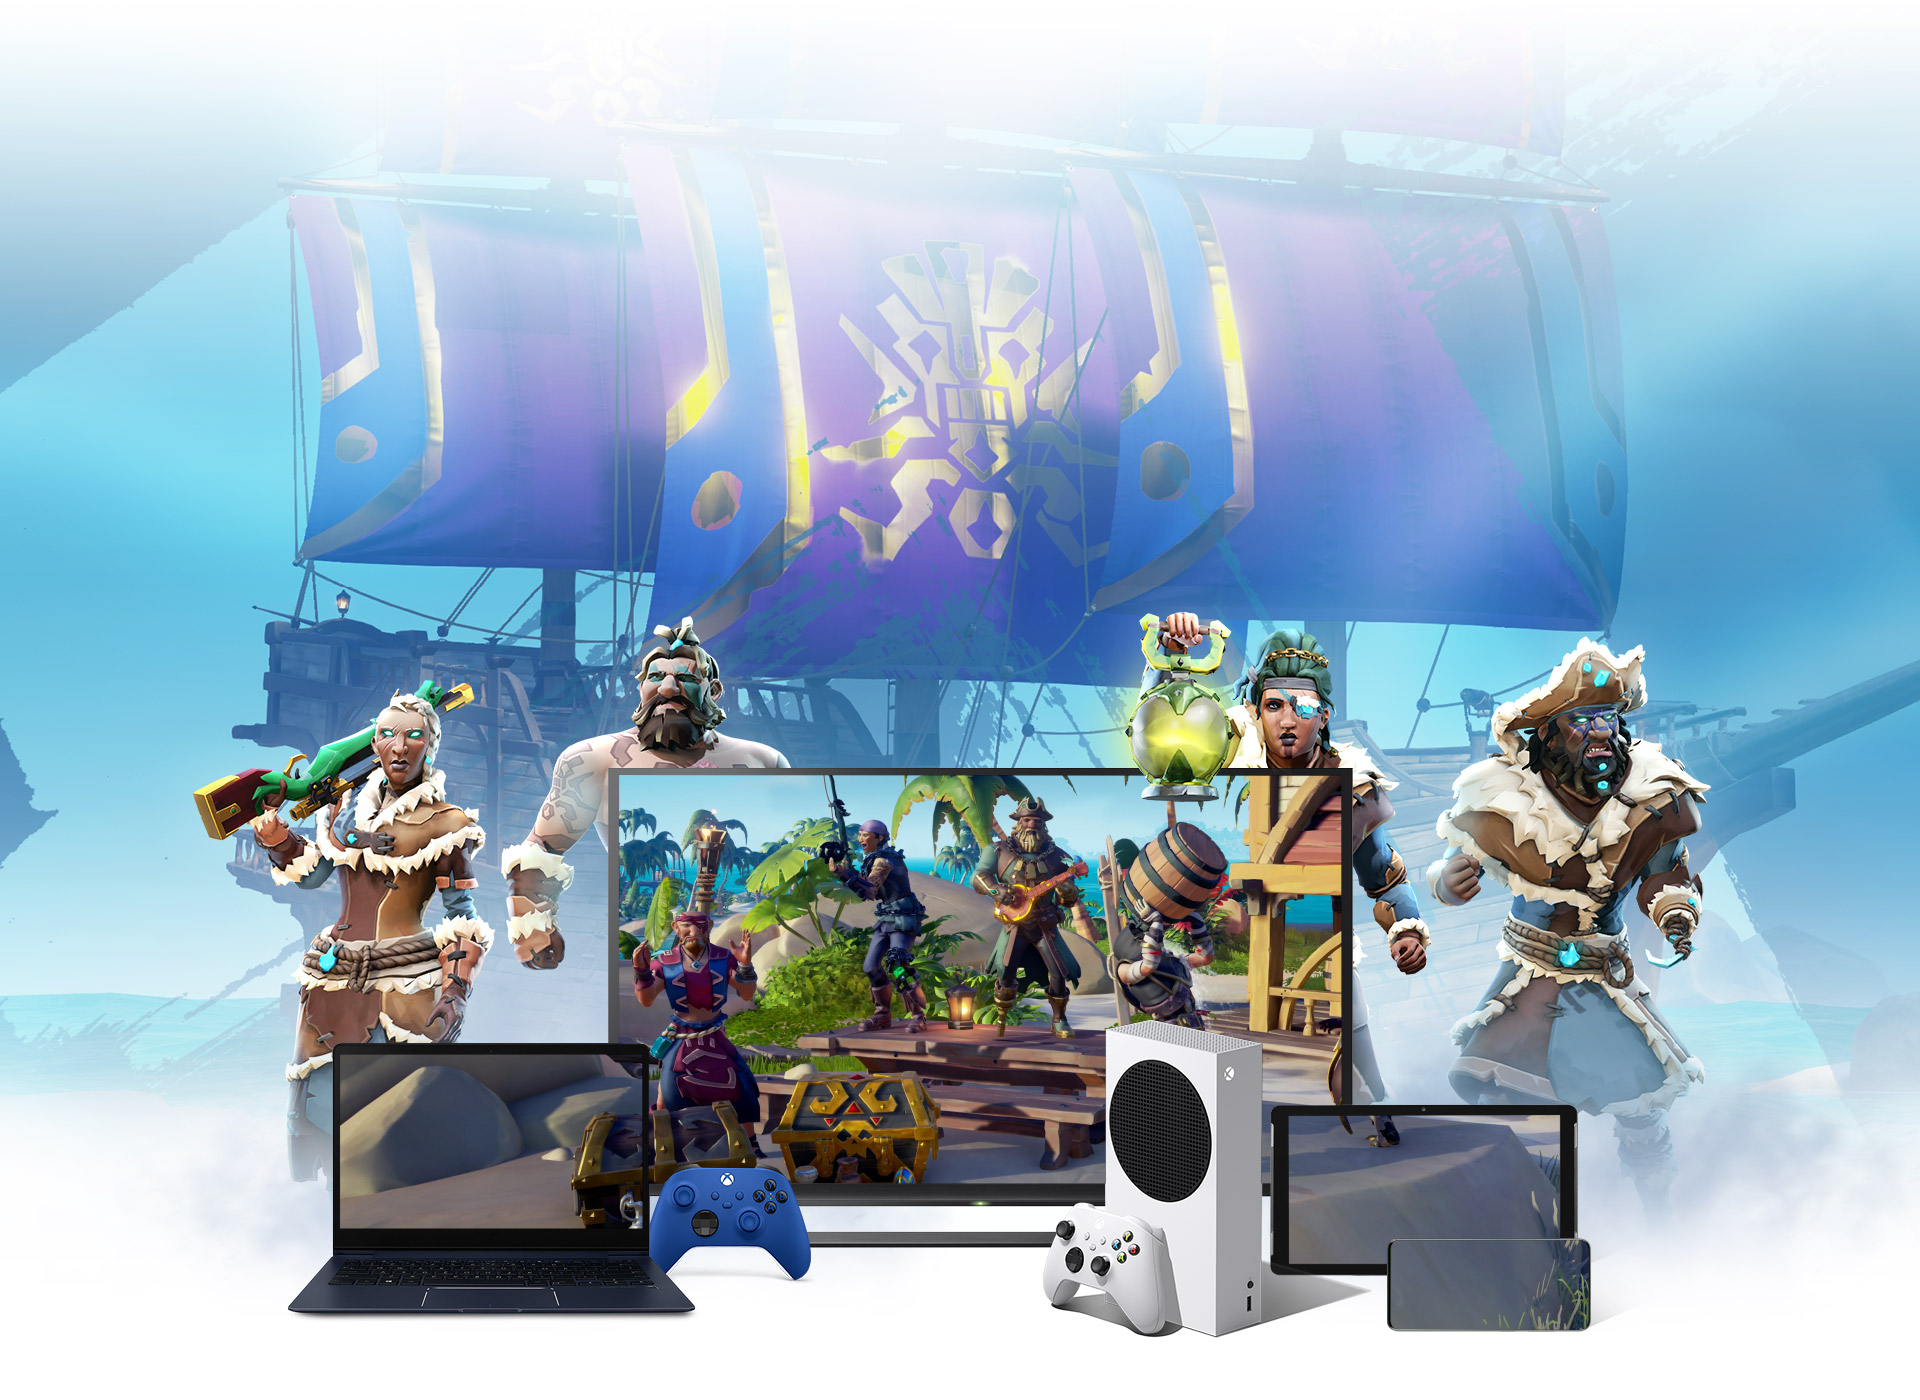 Background of a pirate ship with Sea of Theives characters surrounding a laptop, TV and a mobile device.